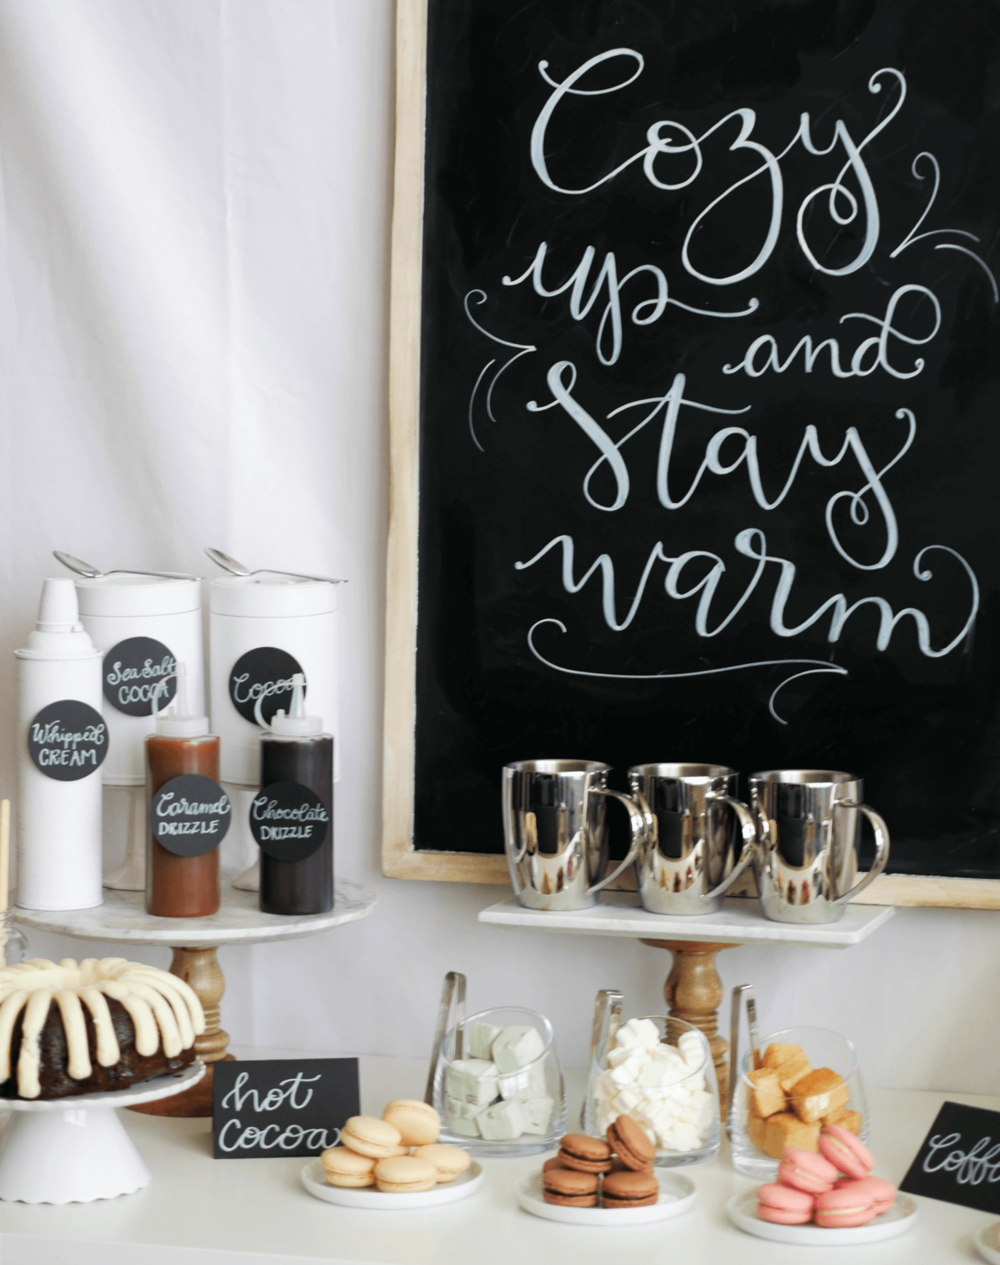 Hot Cocoa Chalkboard sign idea / DIY Hot Cocoa Station / Coffee bar / desserts for a Hot Cocoa Station / Styled by MINT Event Design / www.minteventdesign.com